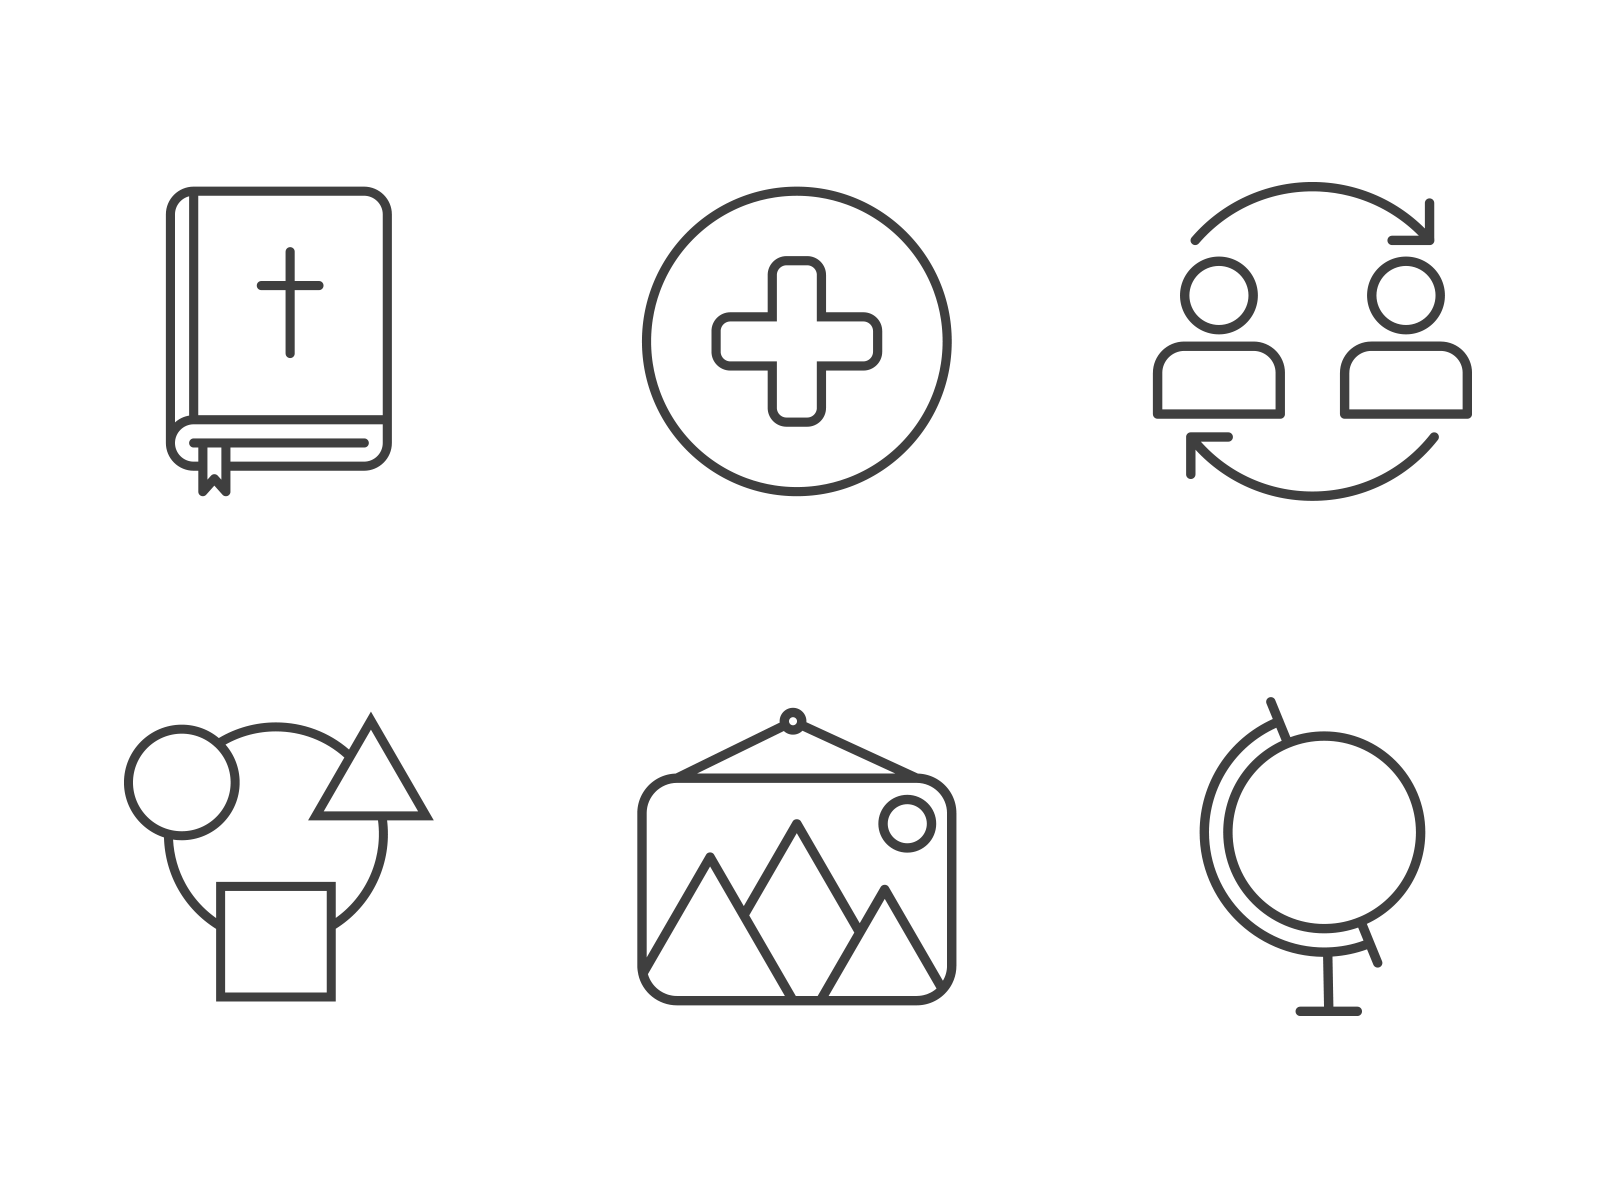 community group icons @2x.png